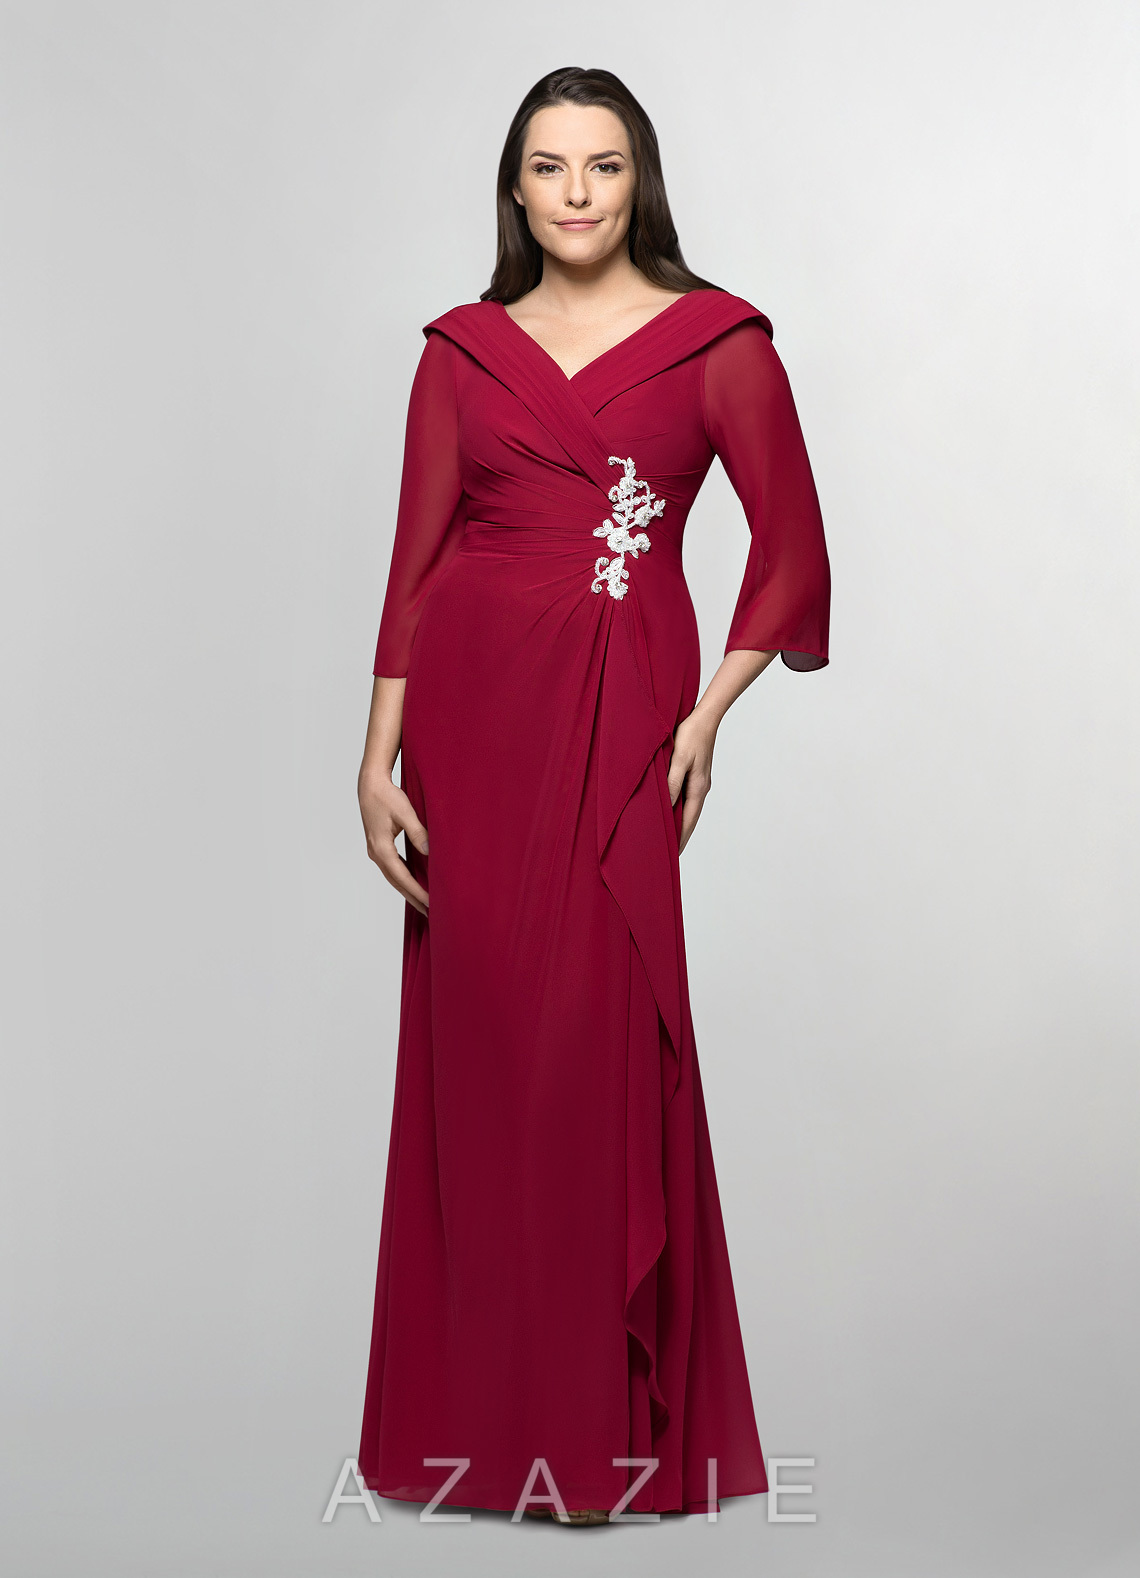 fce10687d42 Azazie Jaycee MBD Mother Of The Bride Dress